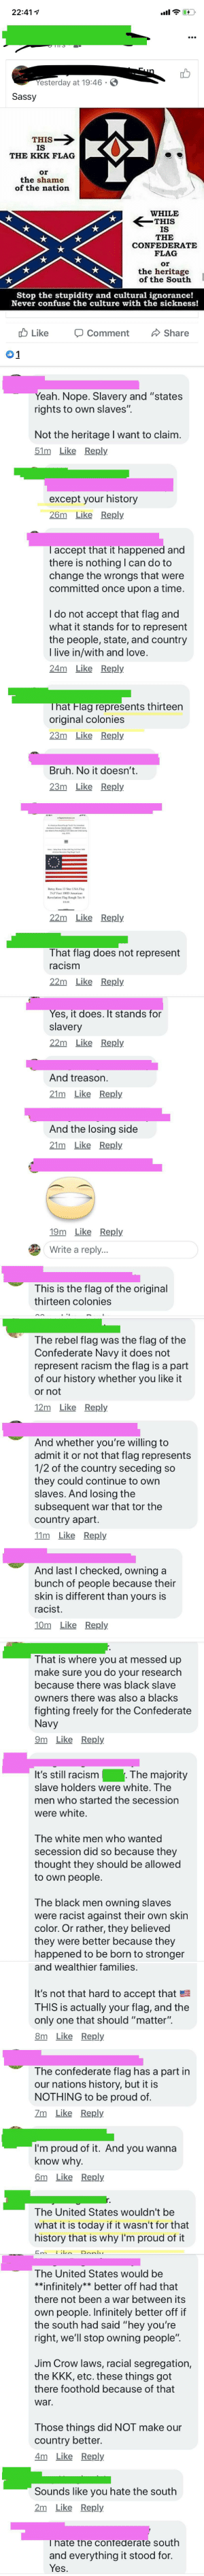 """Bruh, Confederate Flag, and Kkk: 22:41  al  -Fun  Yesterday at 19:46 . S  Sassy  THIS  IS  THE KKK FLAG  the shame  of the nation  WHILE  IS  THE  CONFEDERATE  FLAG  or  the heritage  of the South  Stop the stupidity and cultural ignorance!  Never confuse the culture with the sickness!  Like  Share  OComment  01  Yeah. Nope. Slavery and """"states  rights to own slaves"""".  Not the heritage I want to claim.  51m Like Reply  except your history  26m Like Reply  Taccept  there is nothing I can do to  change the wrongs that were  committed once upon a time.  thappe  and  I do not accept that flag and  what it stands for to represent  the people, state, and country  I live in/with and love.  24m Like Reply  That Flag represents thirteen  original colonies  23m Like Reply  Bruh. No it doesn't.  23m Like Reply  22m Like Reply  That flag does not represent  racism  22m Like Reply  Yes, it does. It stands for  slavery  22m Like Reply  And treason.  21m Like Reply  And the losing side  21m Like Reply  19m Like Reply  Write a reply...  This is the flag of the original  thirteen colonies  The rebel flag was the flag of the  Confederate Navy it does not  represent racism the flag is a part  of our history whether you like it  or not  12m Like Reply  And whether you're willing to  admit it or not that flag represents  1/2 of the country seceding so  they could continue to own  slaves. And losing the  subsequent war that tor the  country apart.  11m Like Reply  And last I checked, owning a  bunch of people because their  skin is different than yours is  racist.  10m Like Reply  That is where you at messed up  make sure you do your research  because there was black slave  owners there was also a blacks  fighting freely for the Confederate  Navy  9m Like Reply  . The majority  It's still racism  slave holders were white. The  men who started the secession  were white.  The white men who wanted  secession did so because they  thought they should be allowed  to own people.  The black men """